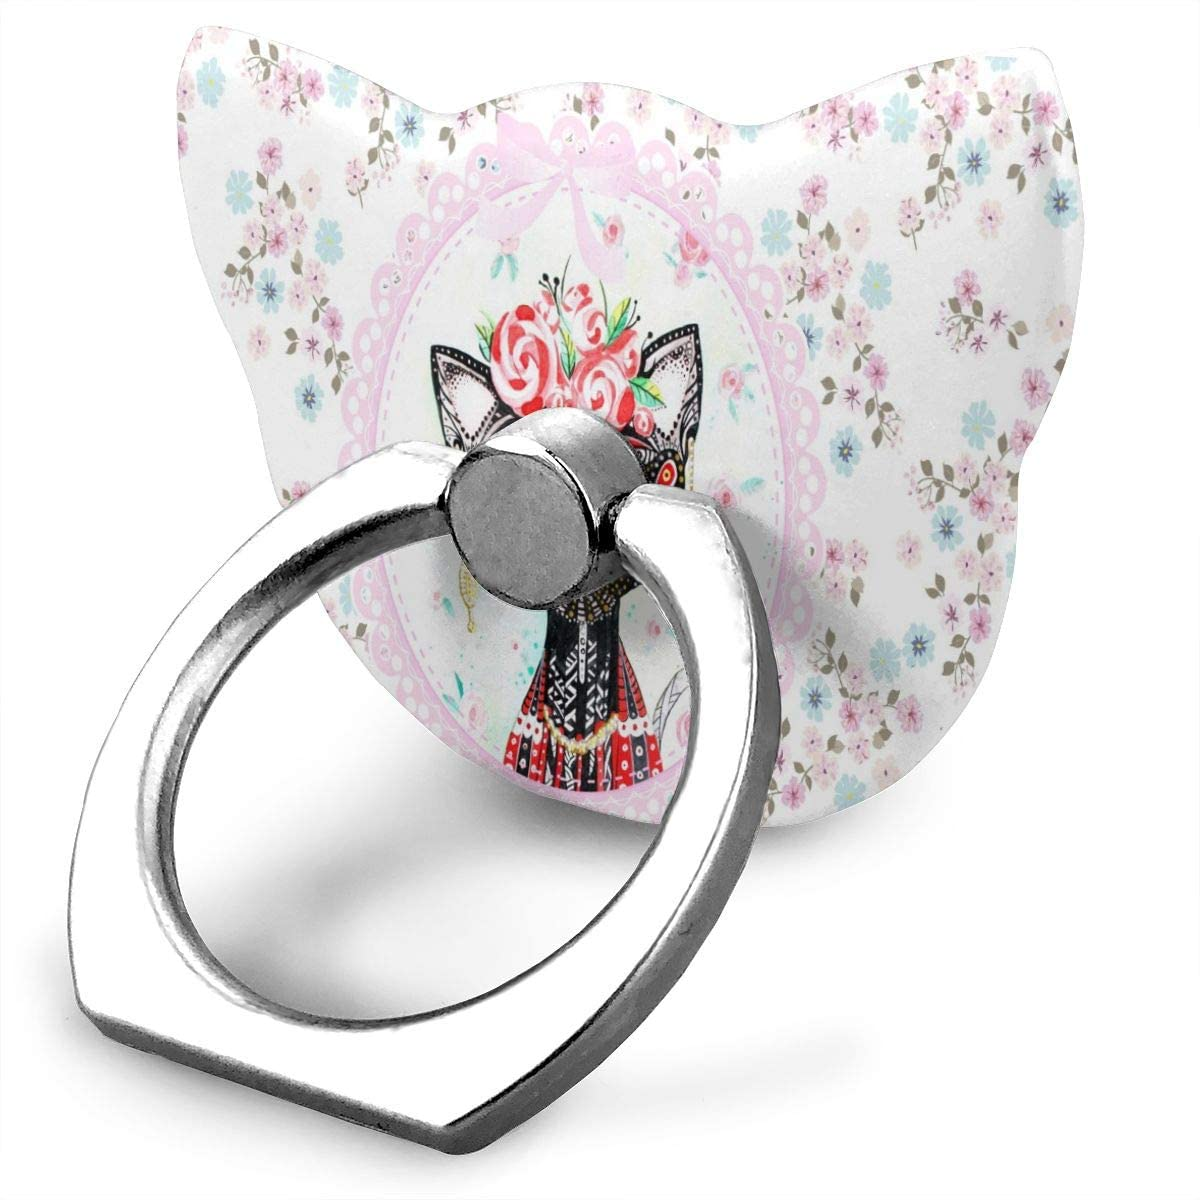 Universal Phone Ring Holder Cute Cat and Bird Cat Shape Cell Phone Ring Stand Adjustable 360°Rotation Finger Kickstand Grip-Silver Mobile Phone Stand for Women Kids Men Ladies Smartphones